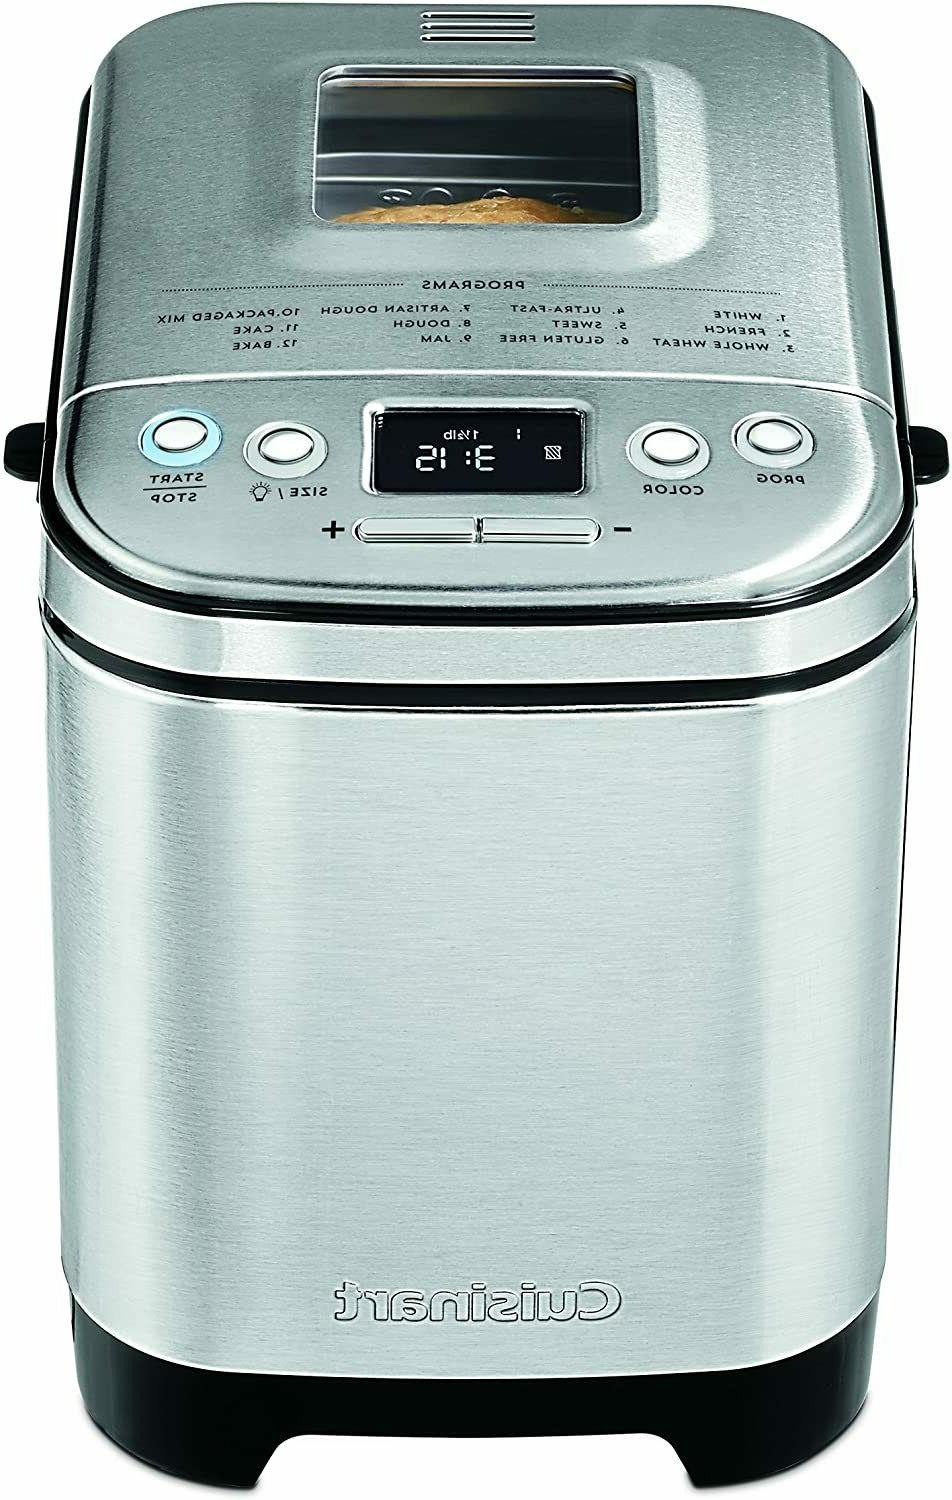 Brand New Cuisinart CBK-110 Compact Automatic Bread Maker Up